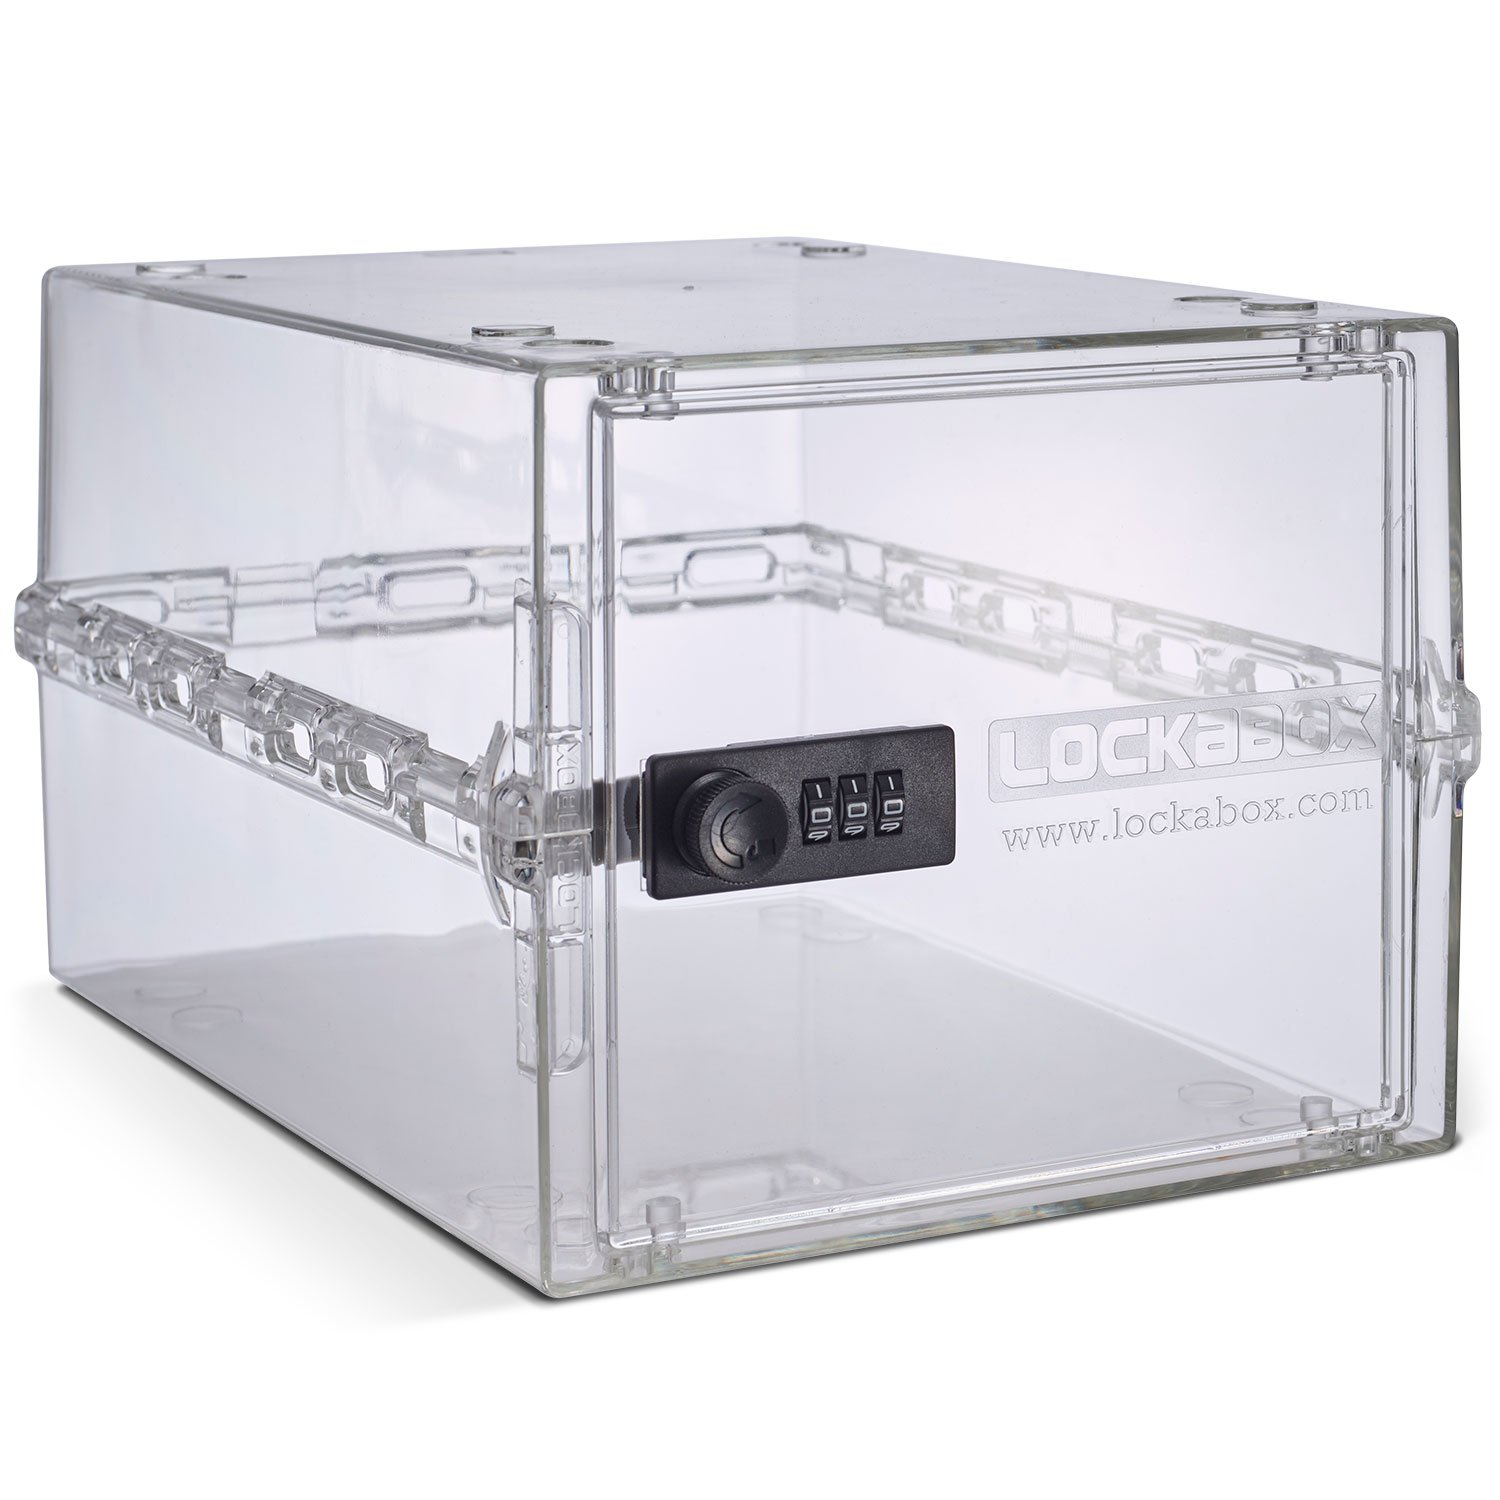 Lockabox One | Compact and hygienic lockable box for food, medicines and home safety by Lockabox